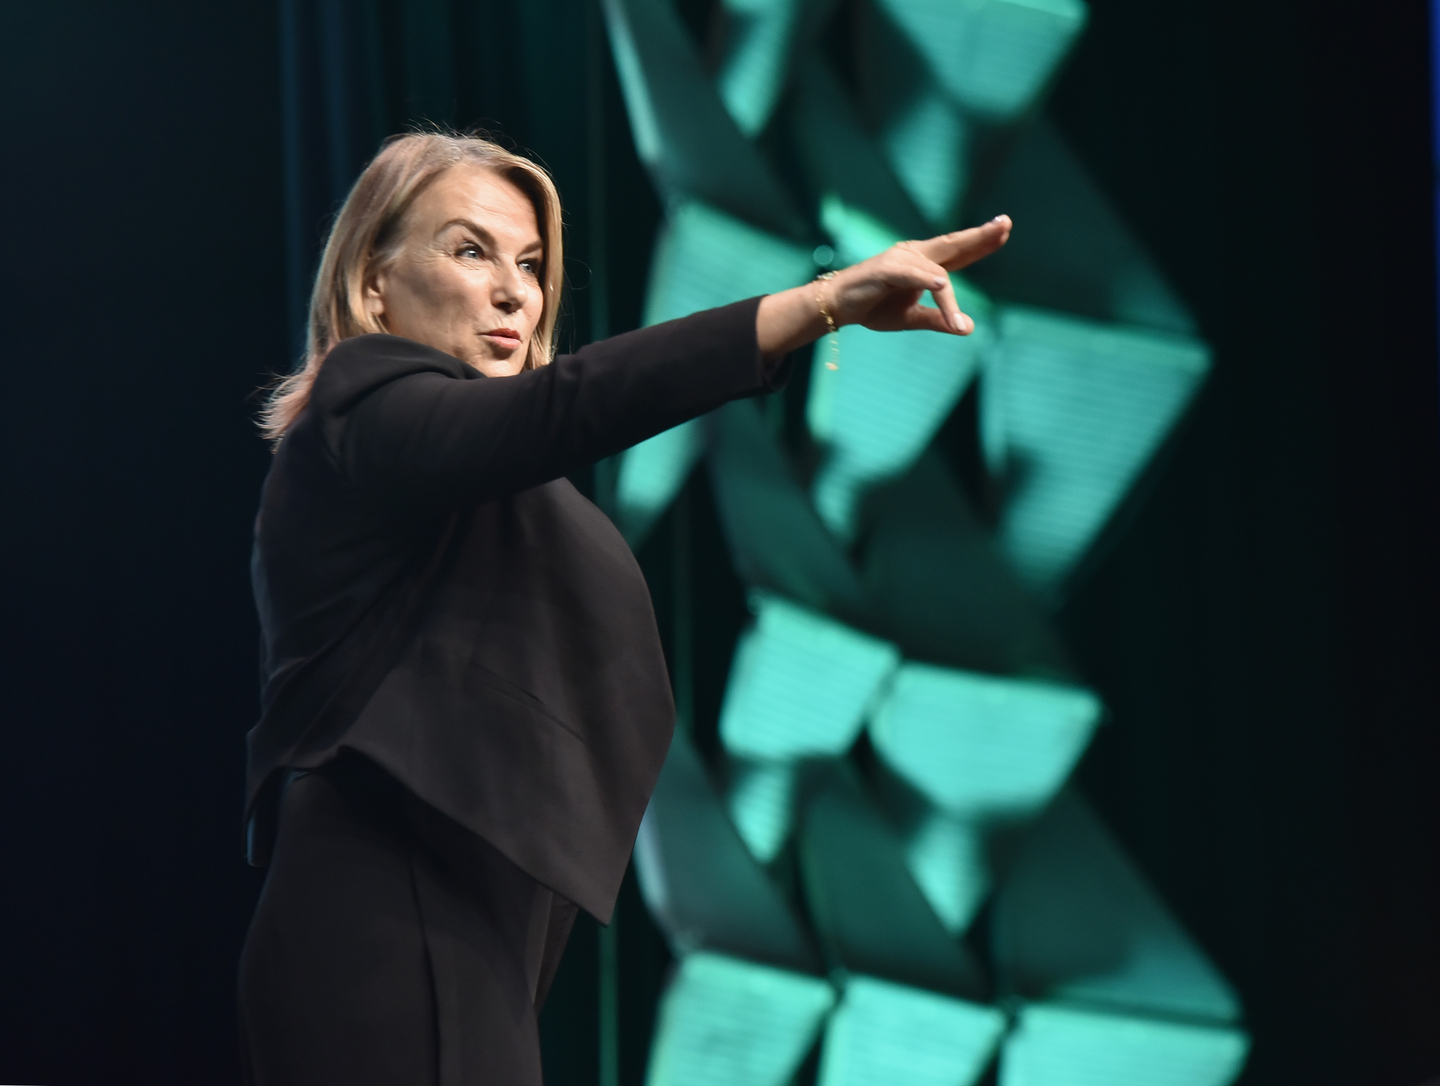 Esther Perel is applying her extensive knowledge of relationships to help us master the art of modern leadership. Watch the Featured Session.